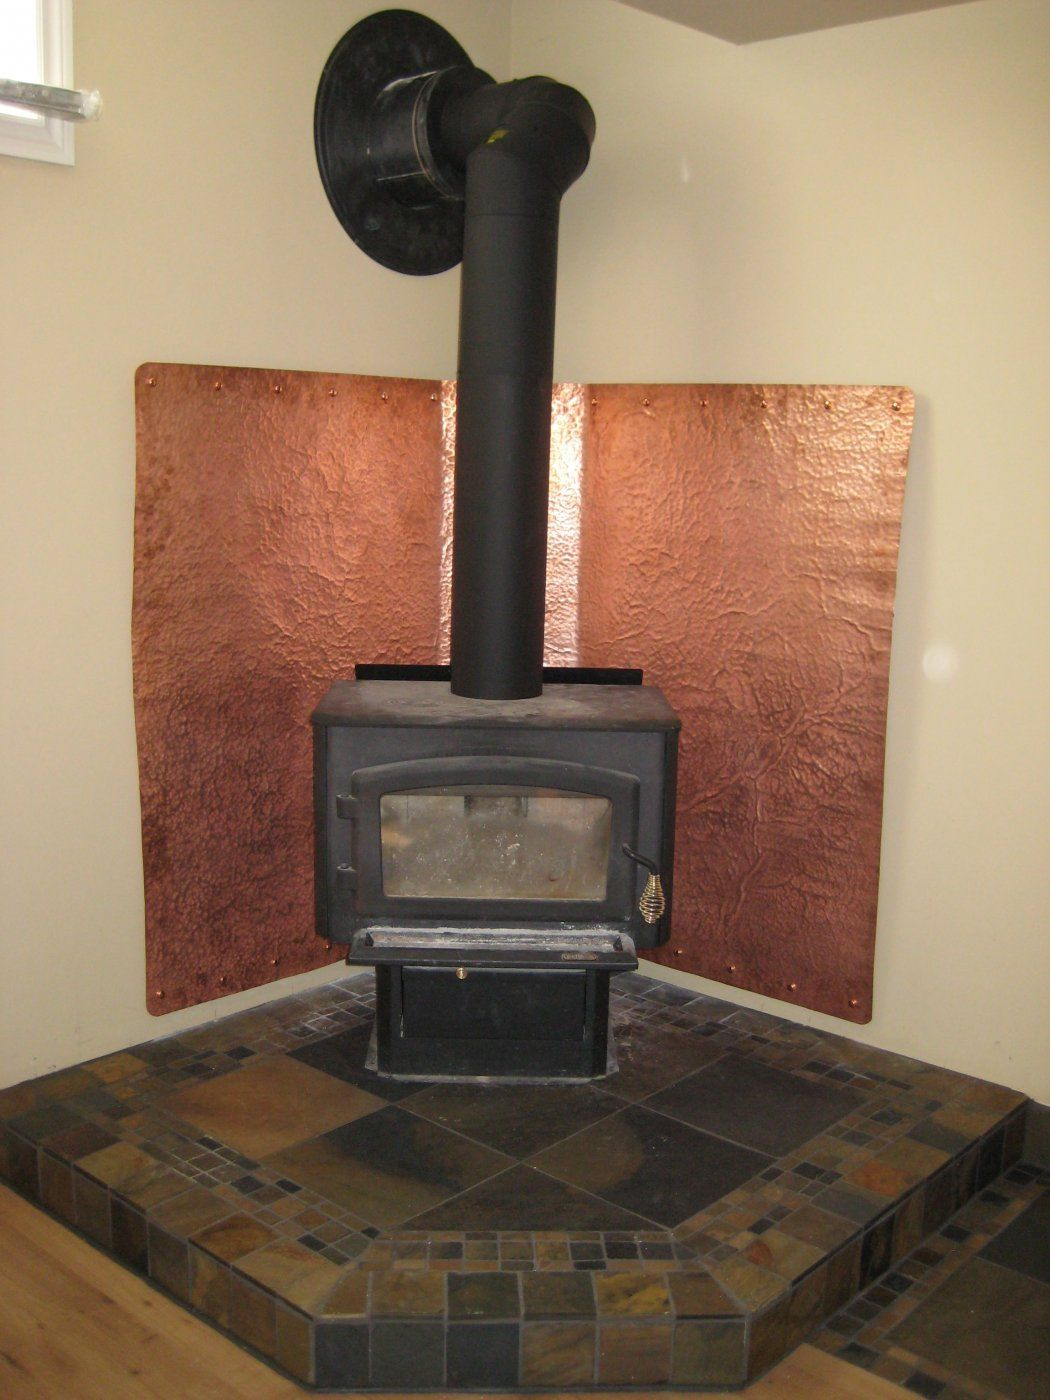 hearth dp remote midwest shield gas com receiver and amazon fireplaces home kitchen fireplace cover heat by for logs